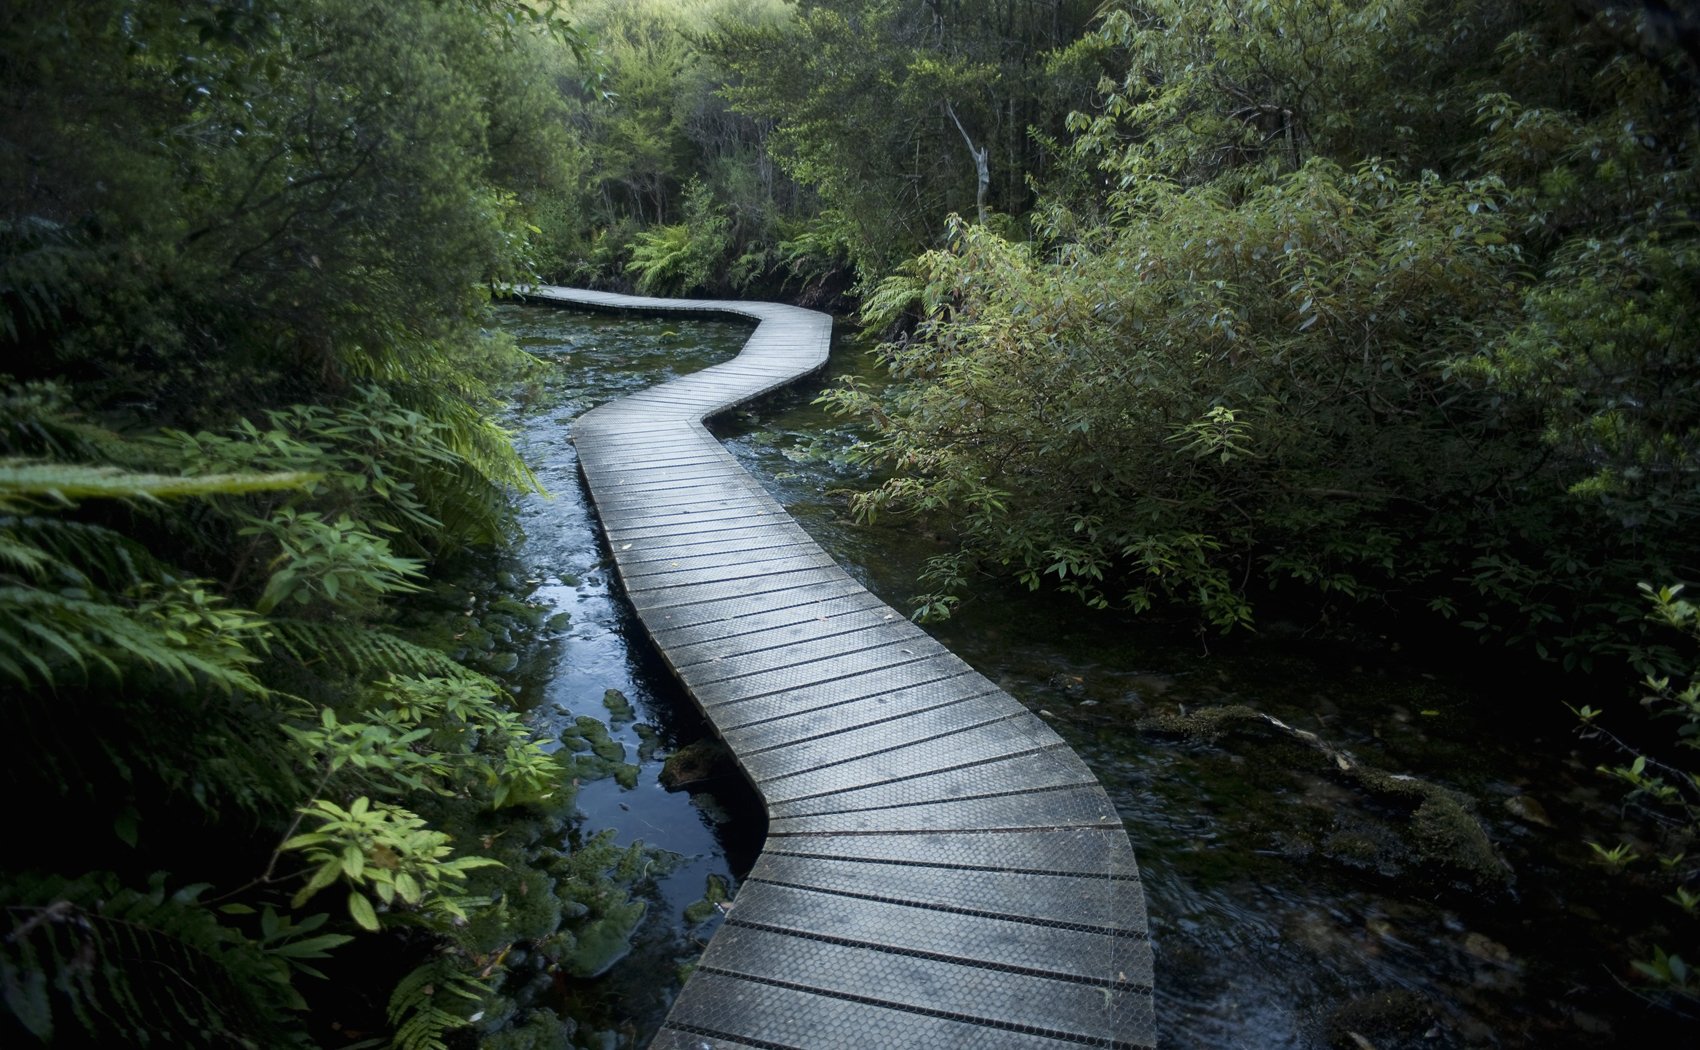 Winding Boardwalk through Forest, Pohara, Golden Bay District, Nelson Region, South Island, New Zealand